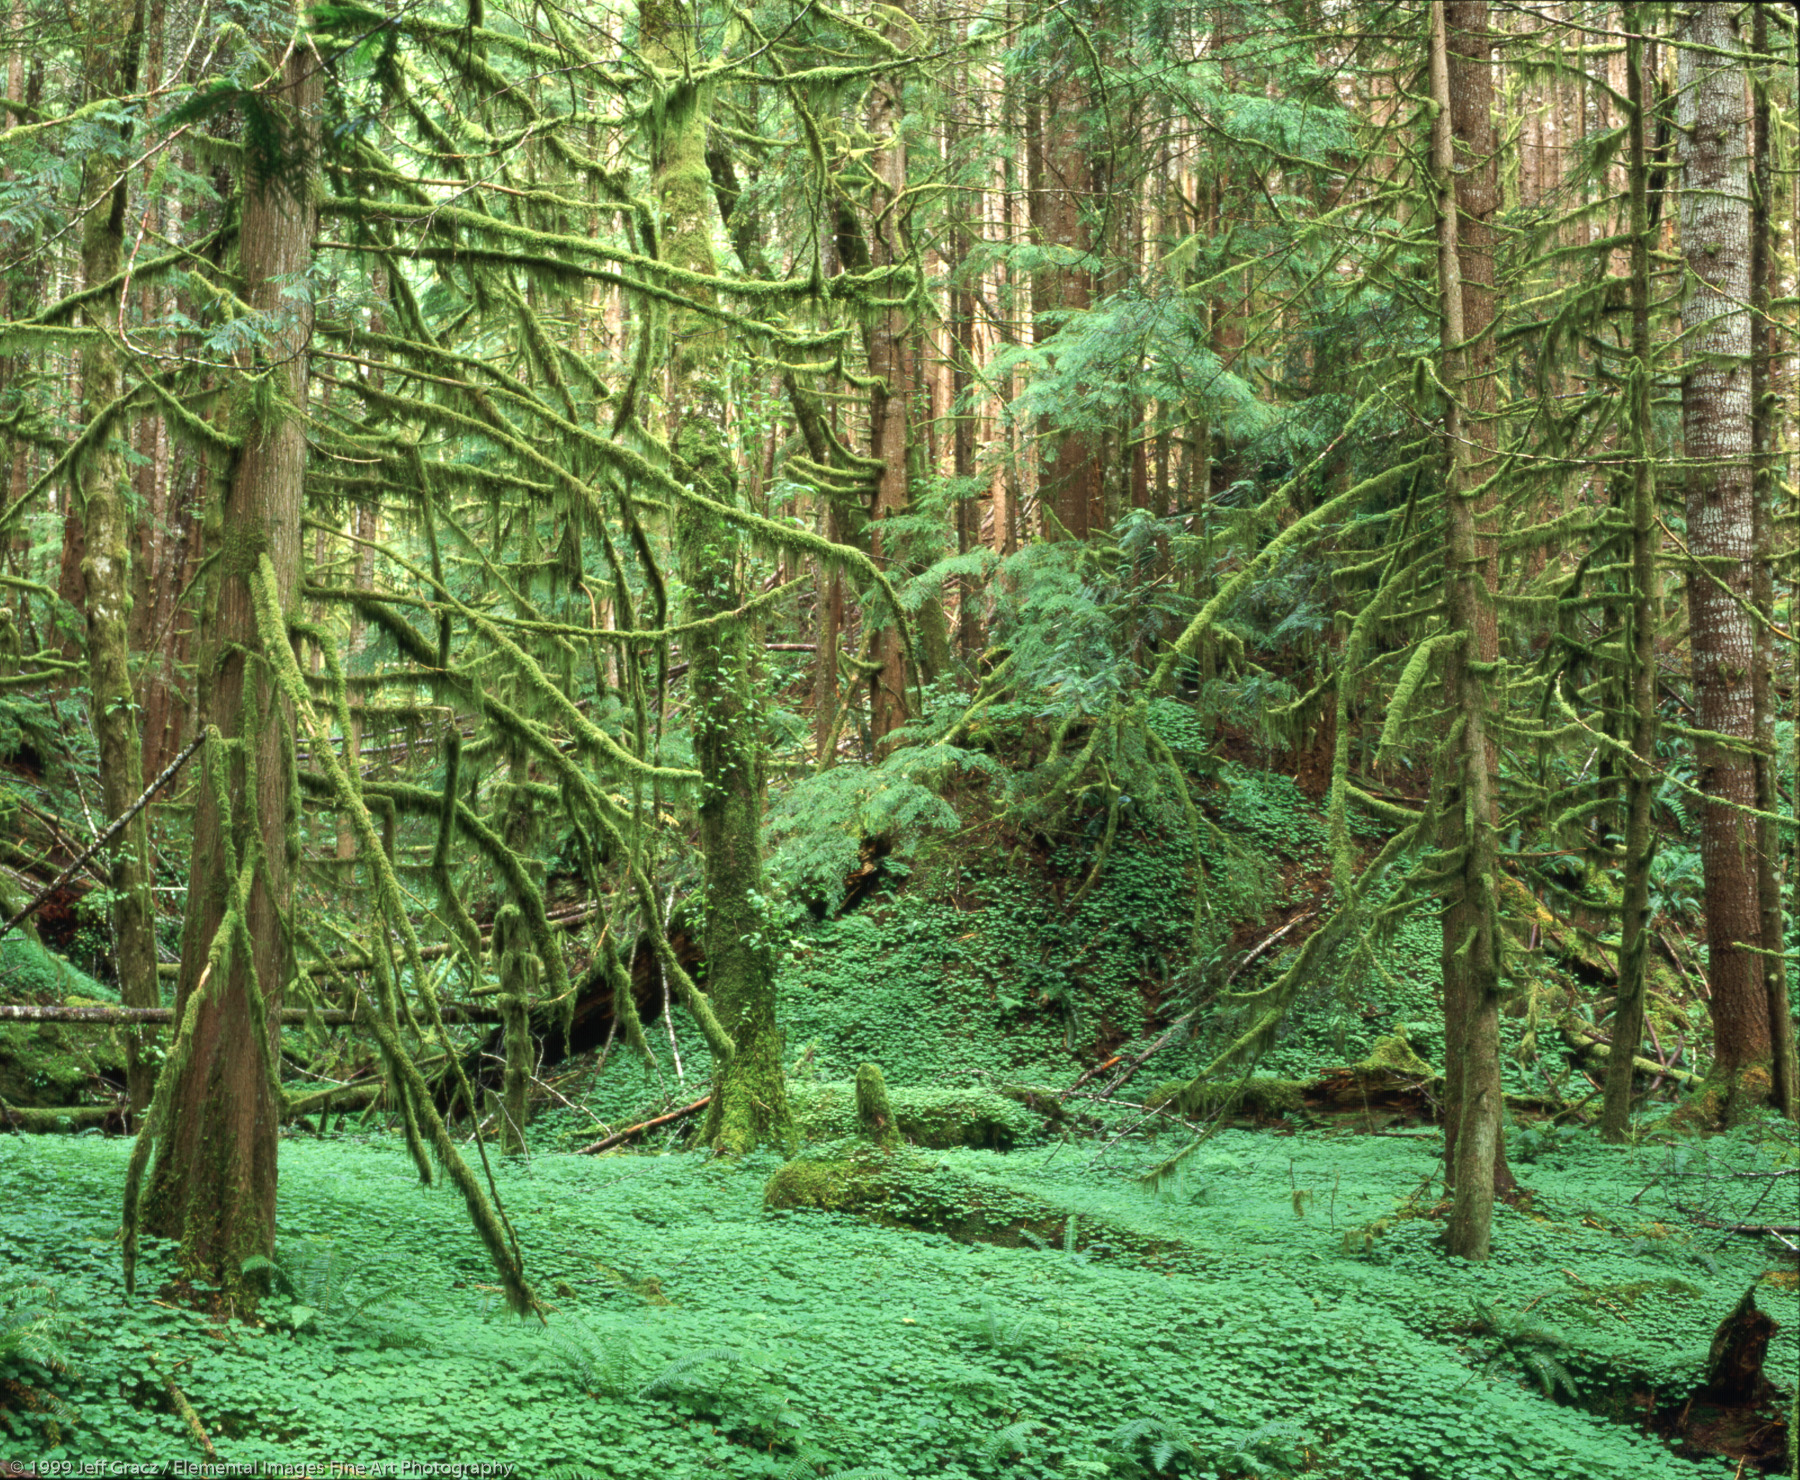 lushness. moss shrouded tree boughs, ferns, sorrel | clatsop state forest | OR | usa - © © 1999 Jeff Gracz / Elemental Images Fine Art Photography - All Rights Reserved Worldwide